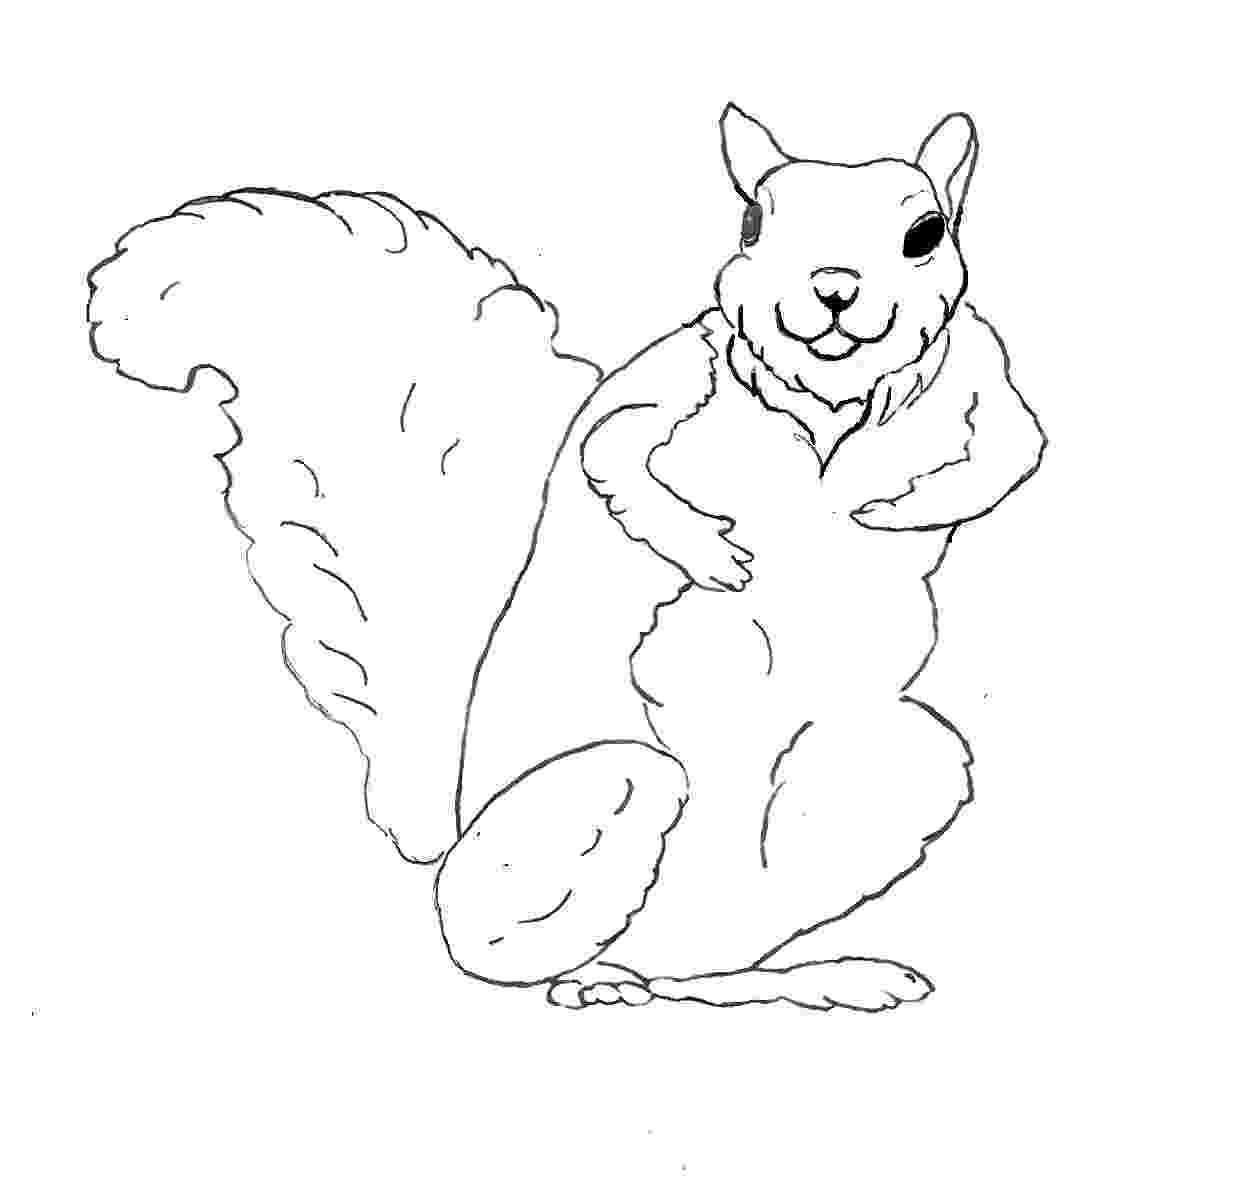 flying squirrel coloring page coloring pages free printable coloring pages for kids squirrel flying coloring page